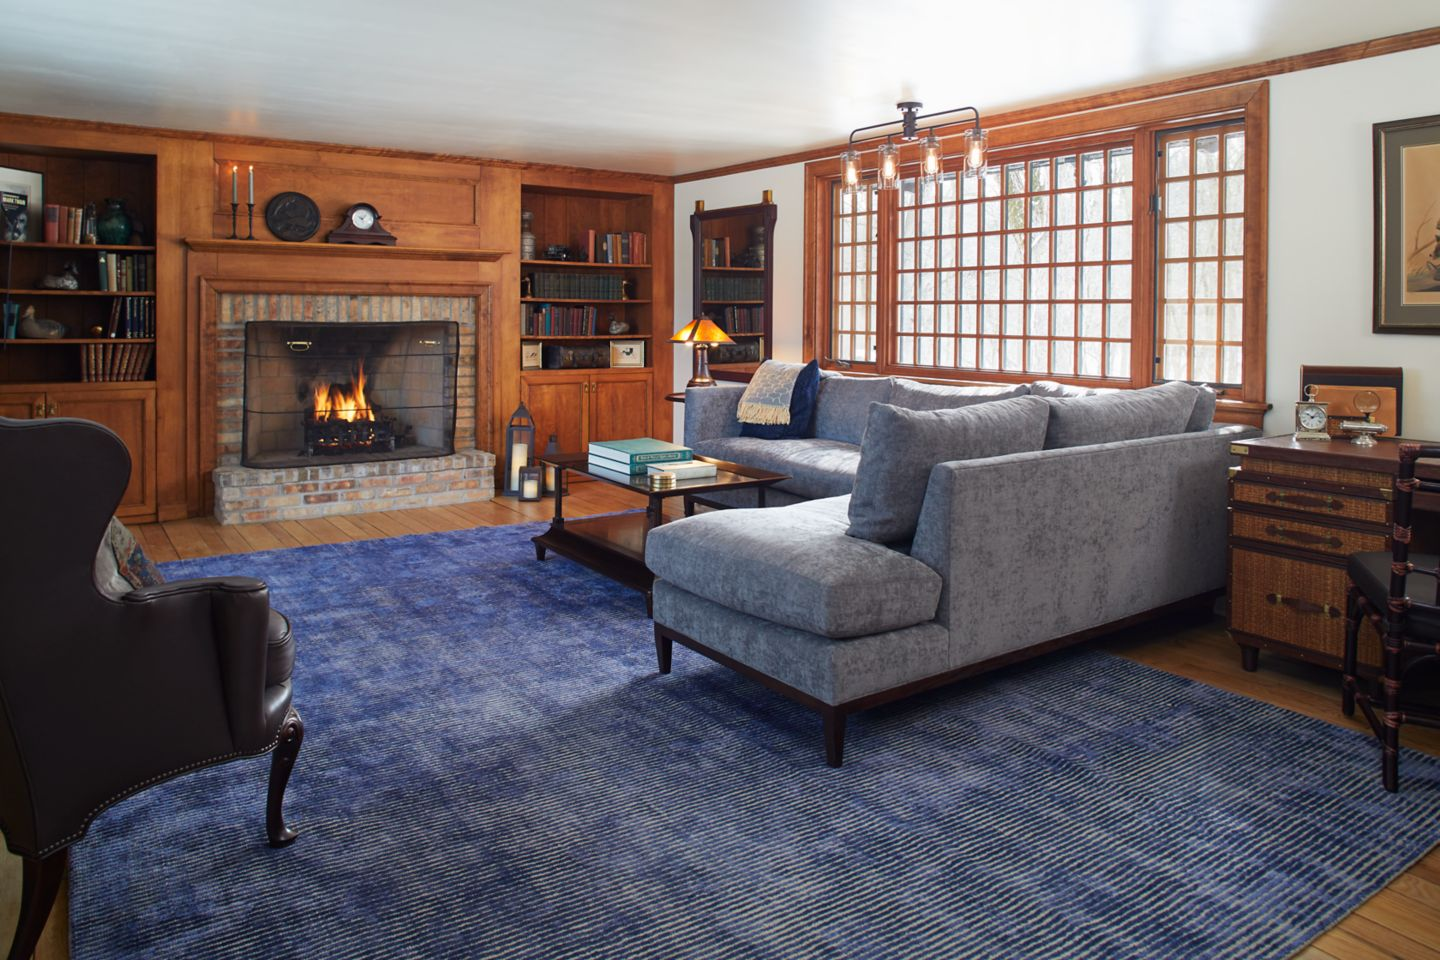 The living room at Red Fox